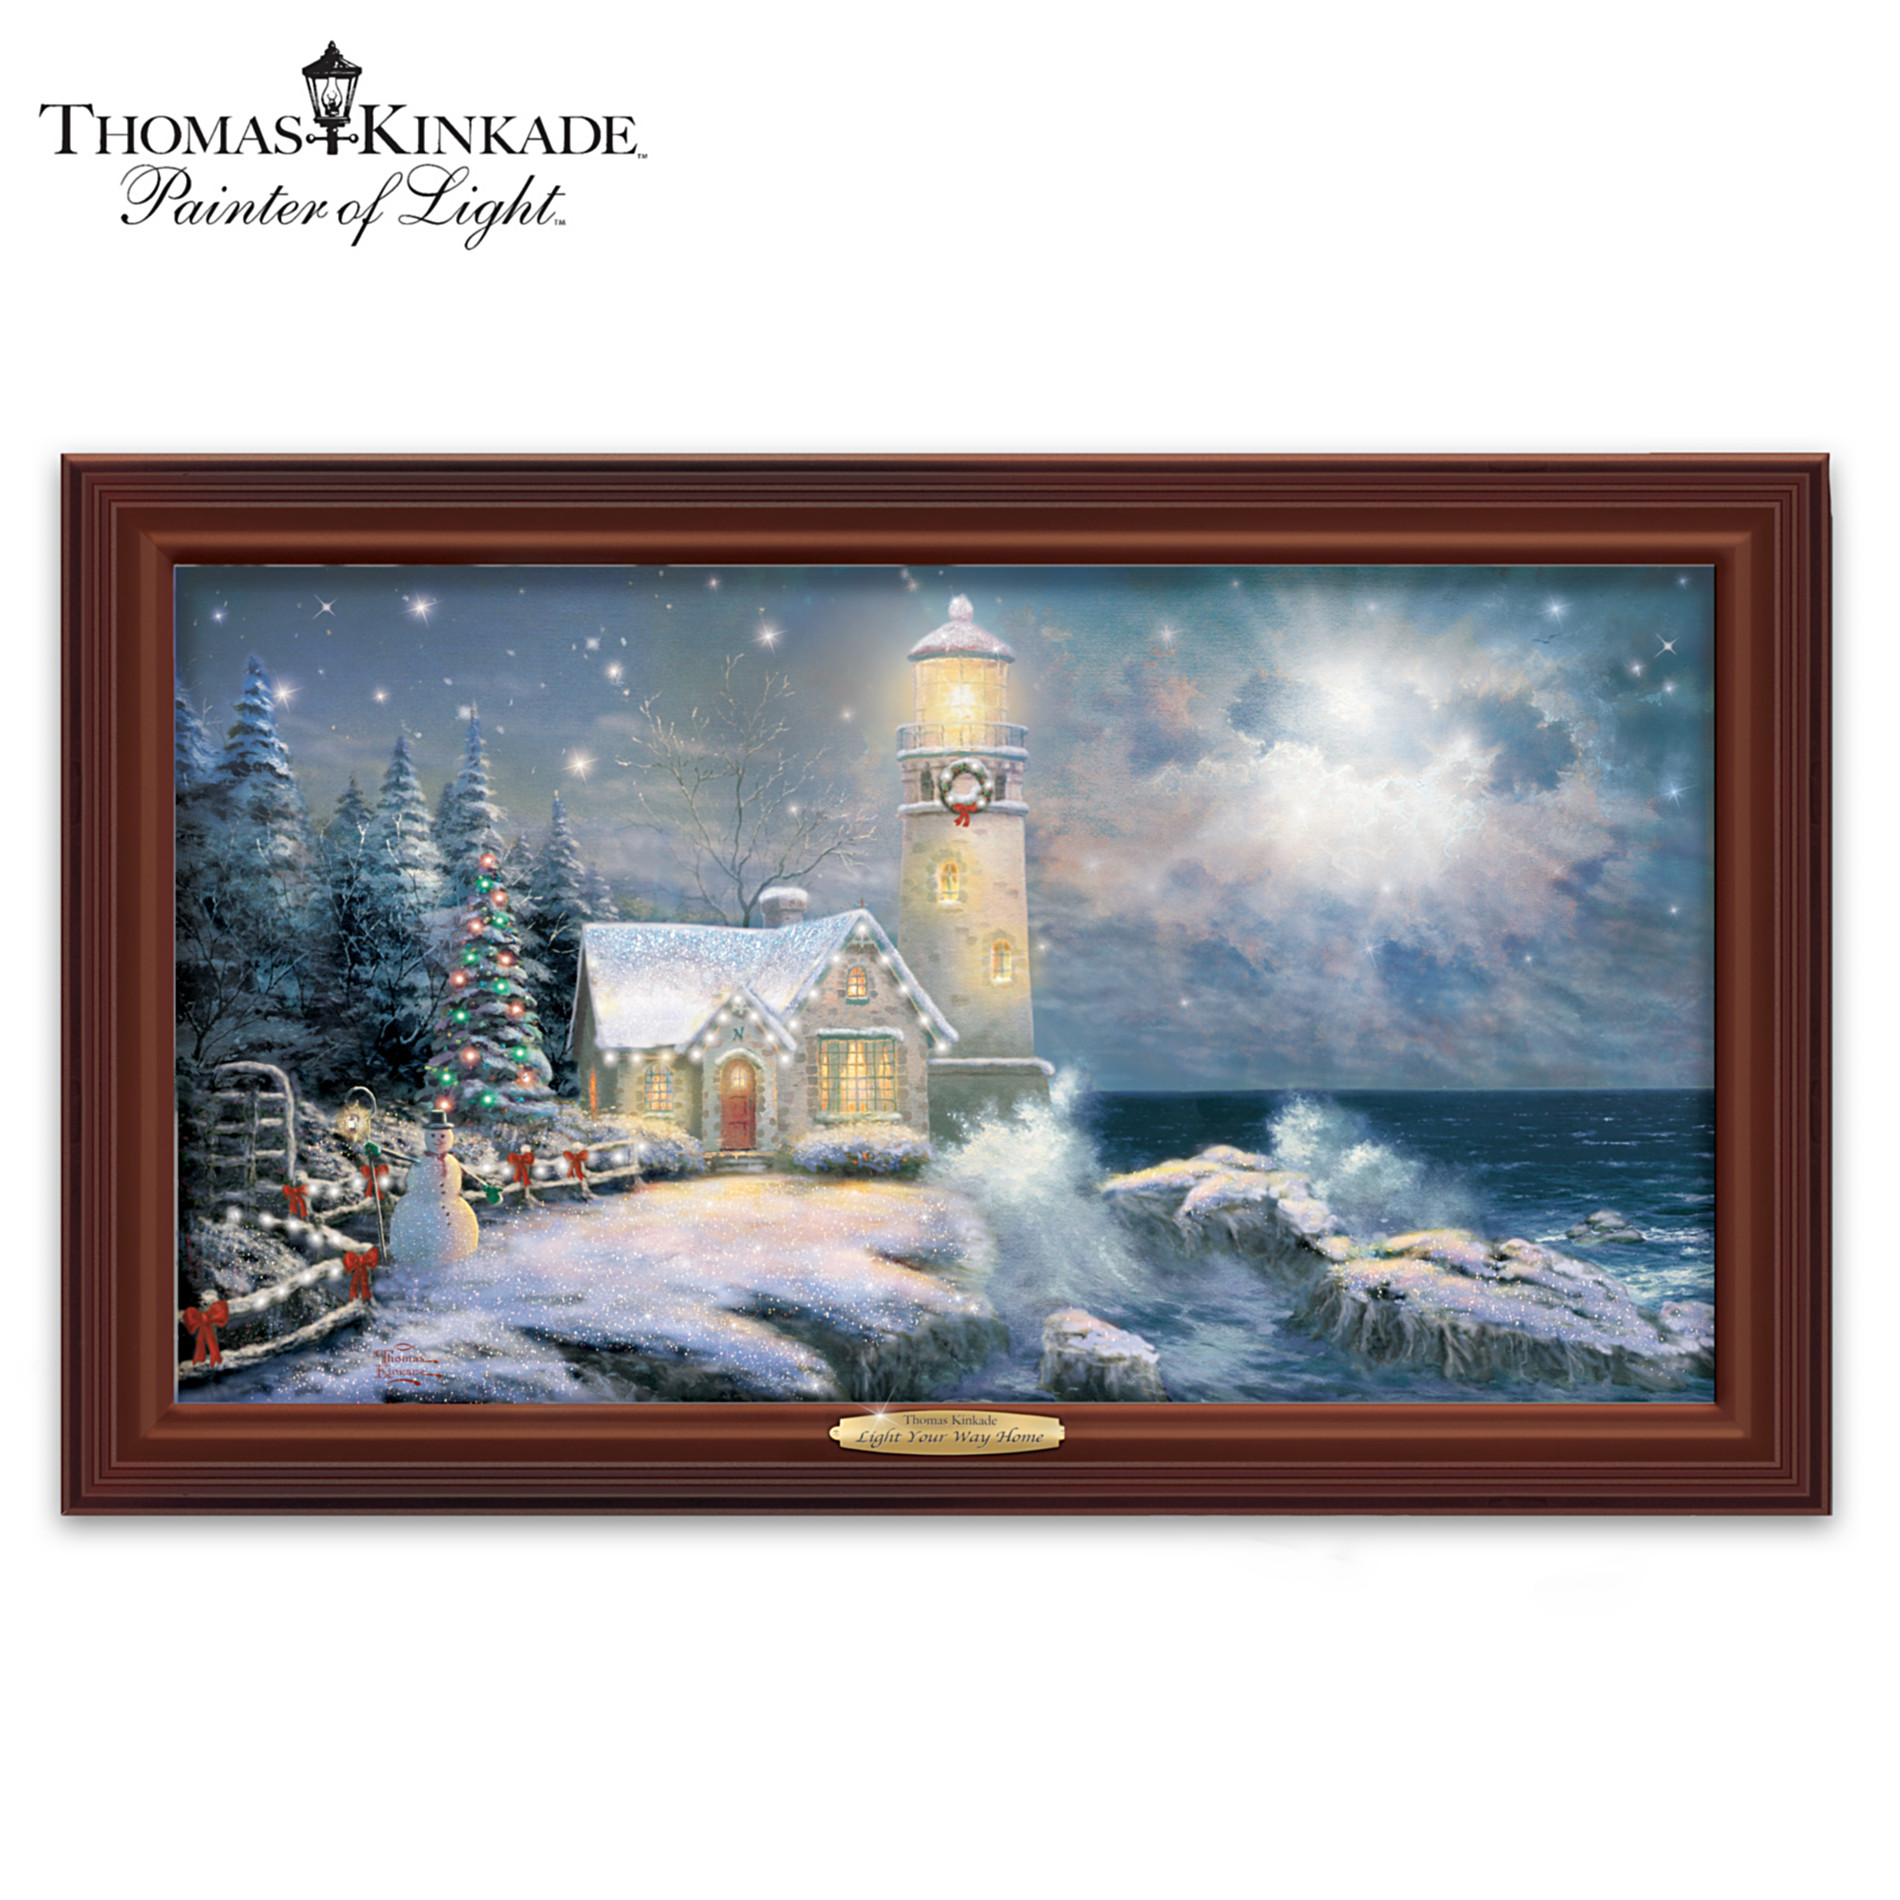 The Bradford Exchange Wall Decor: Thomas Kinkade Light Your Way Home Wall Decor at Sears.com